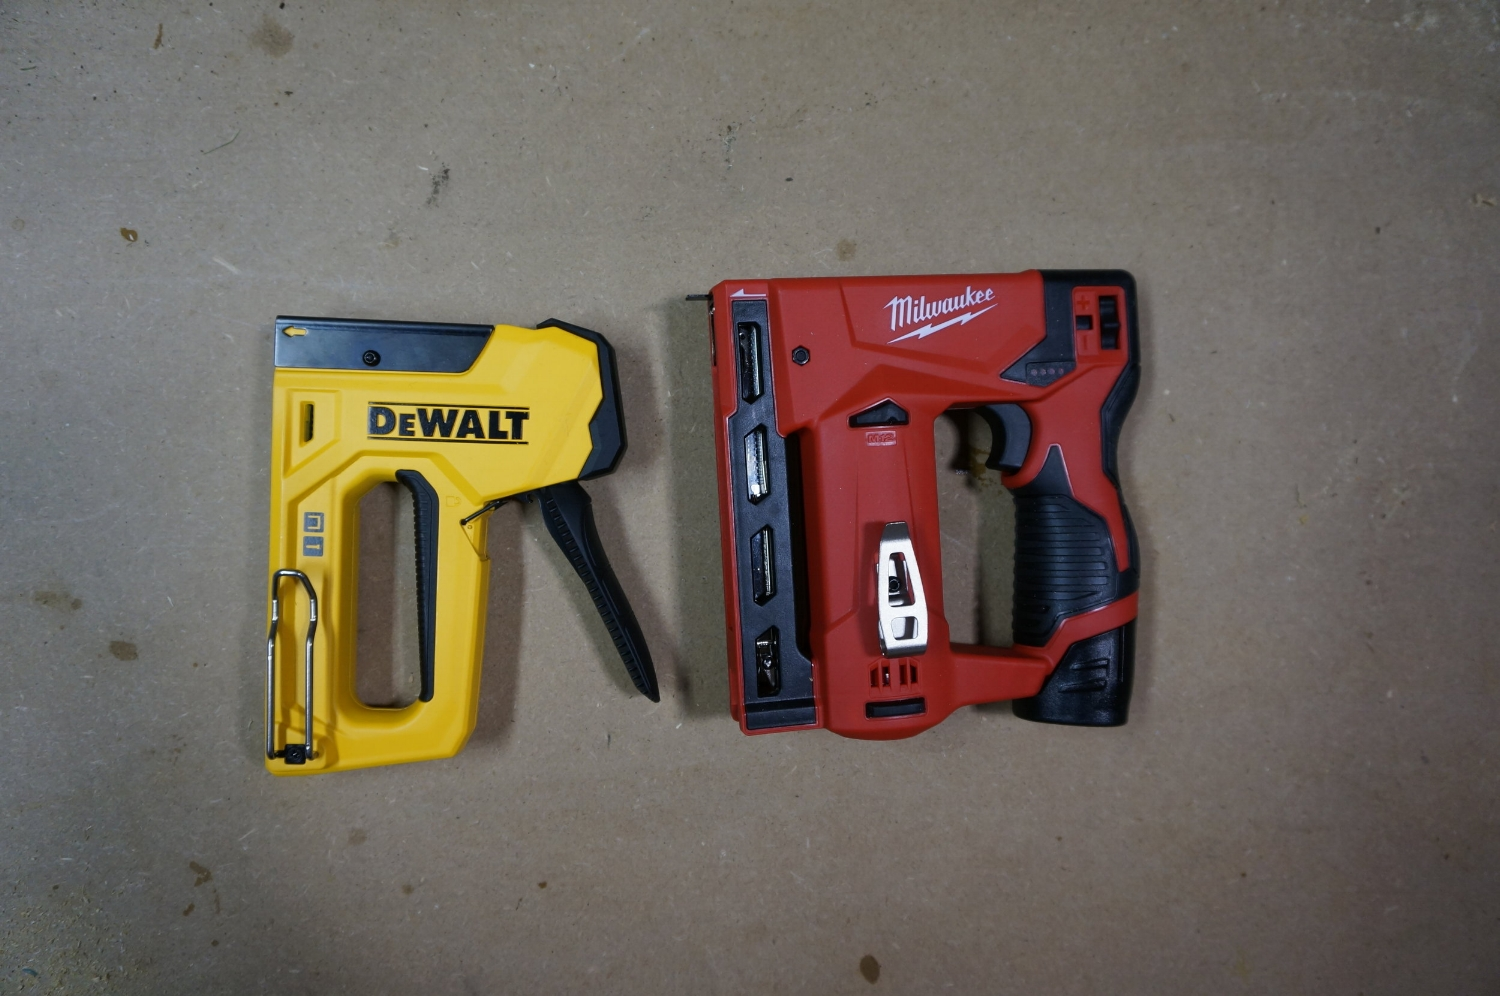 Size comparison between common DeWalt squeeze tacker and the Milwaukee M12 Stapler